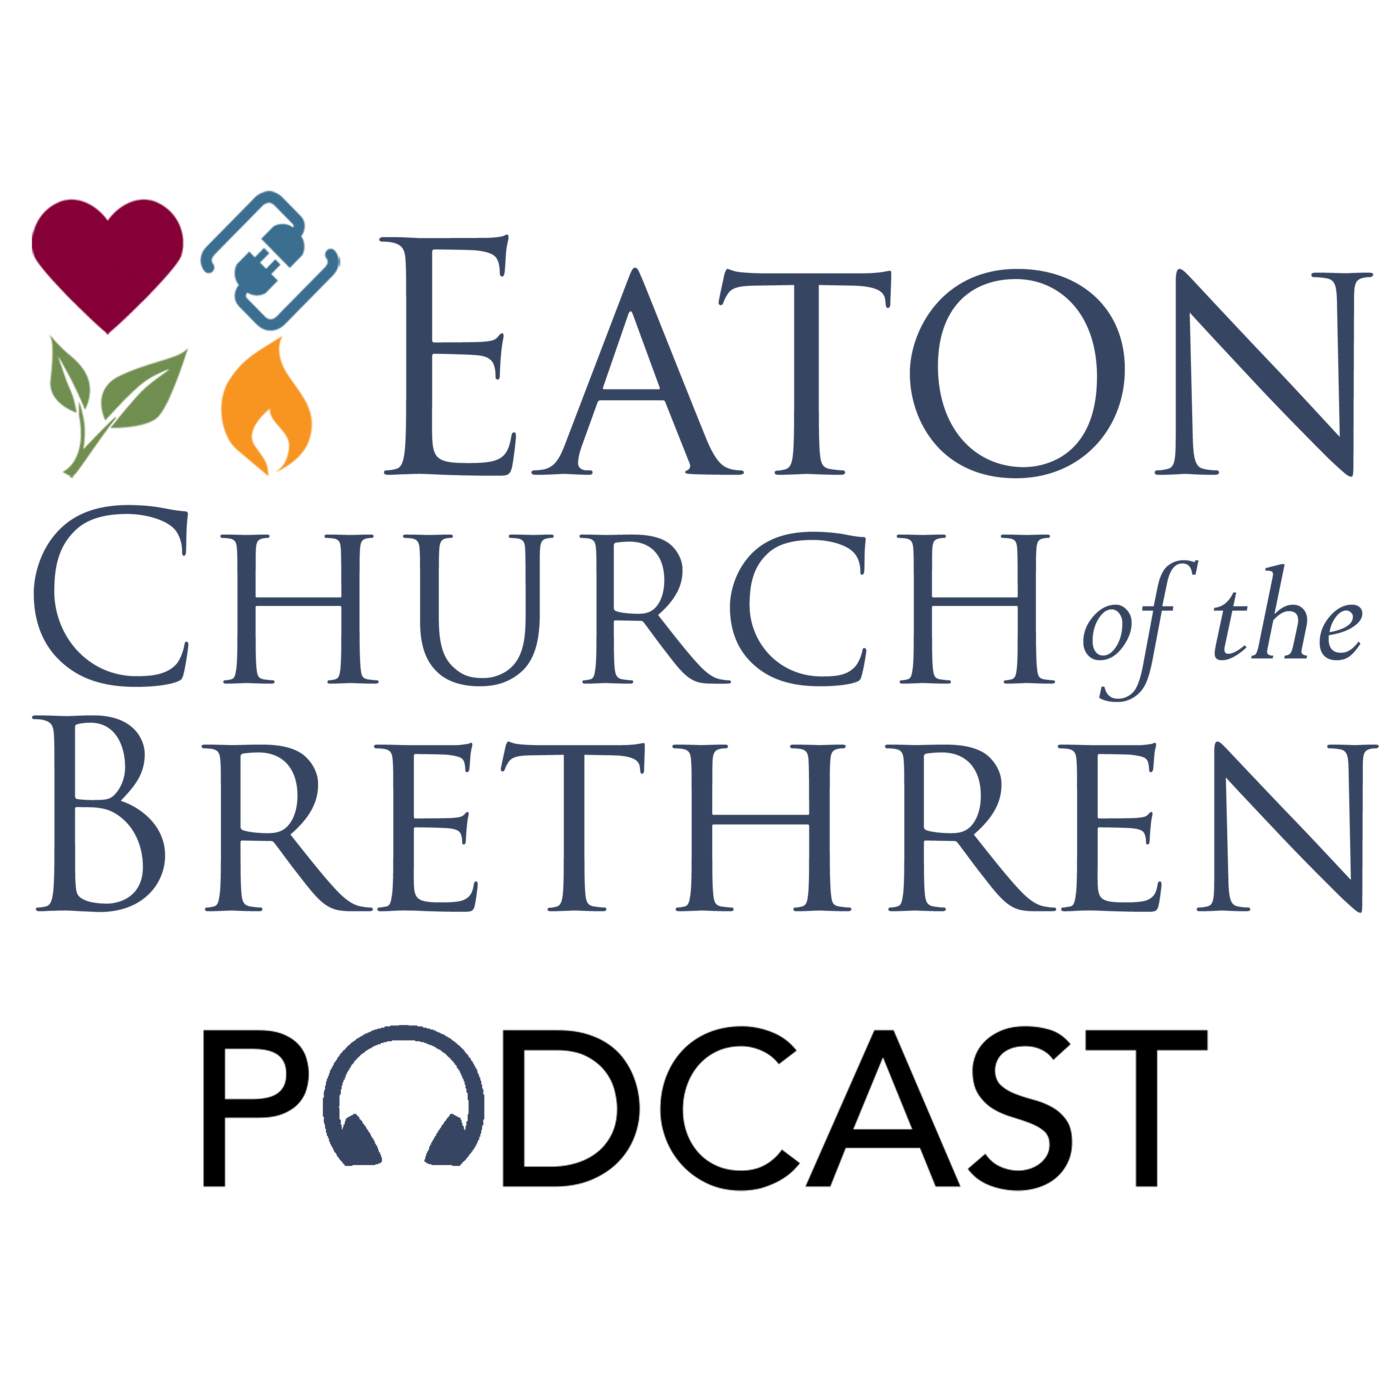 Eaton Church of the Brethren